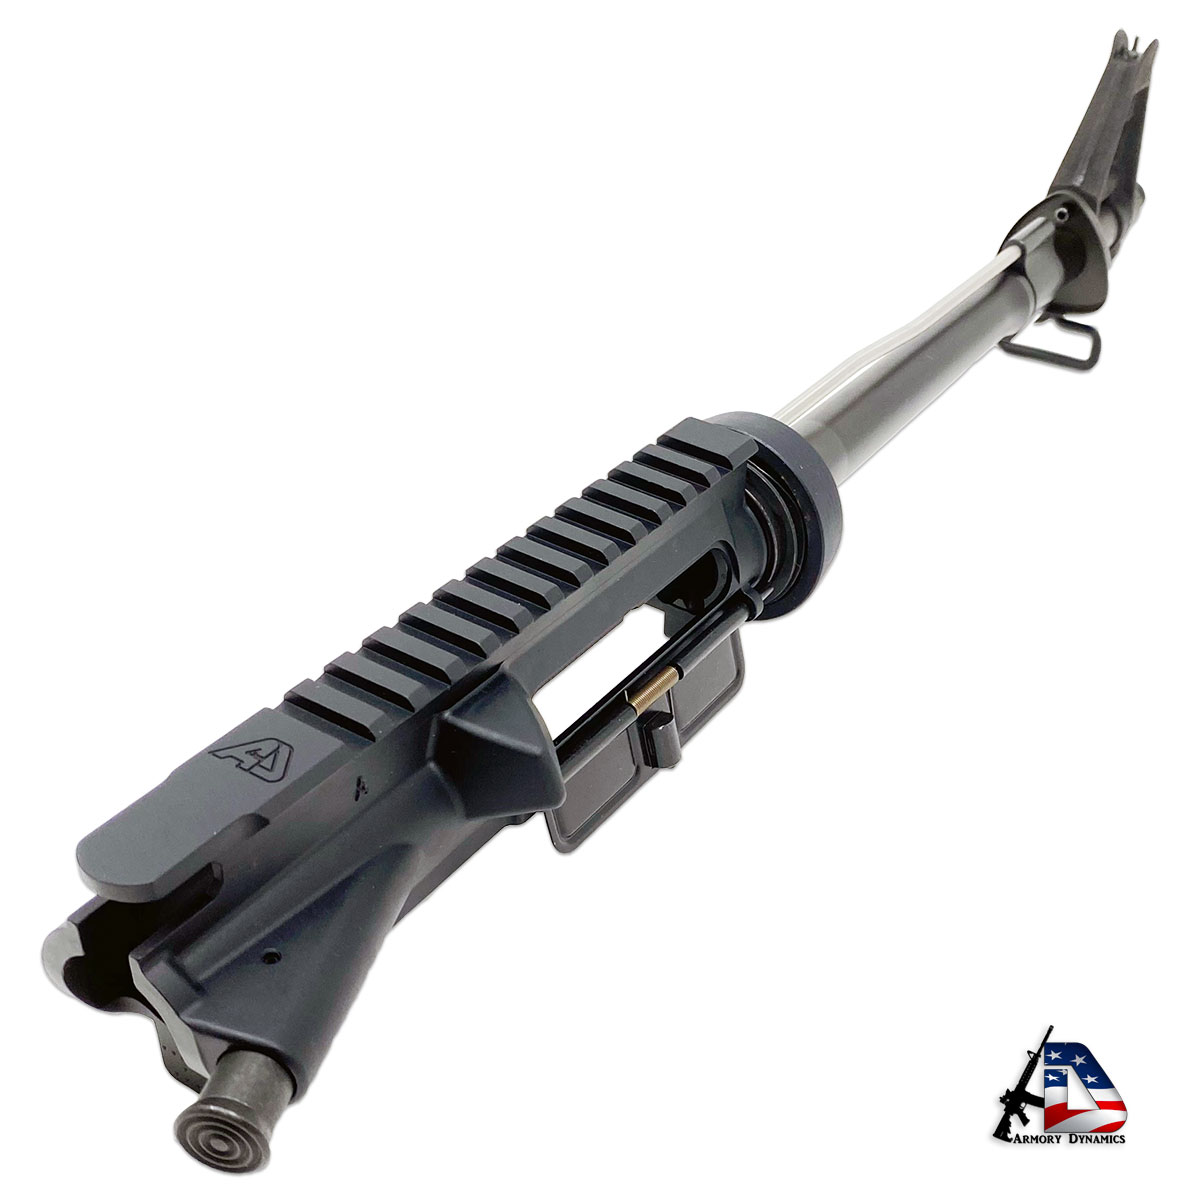 Armory Dynamics AD-15 12.5 Inch 5.56mm FSB Upper Receiver Assembly